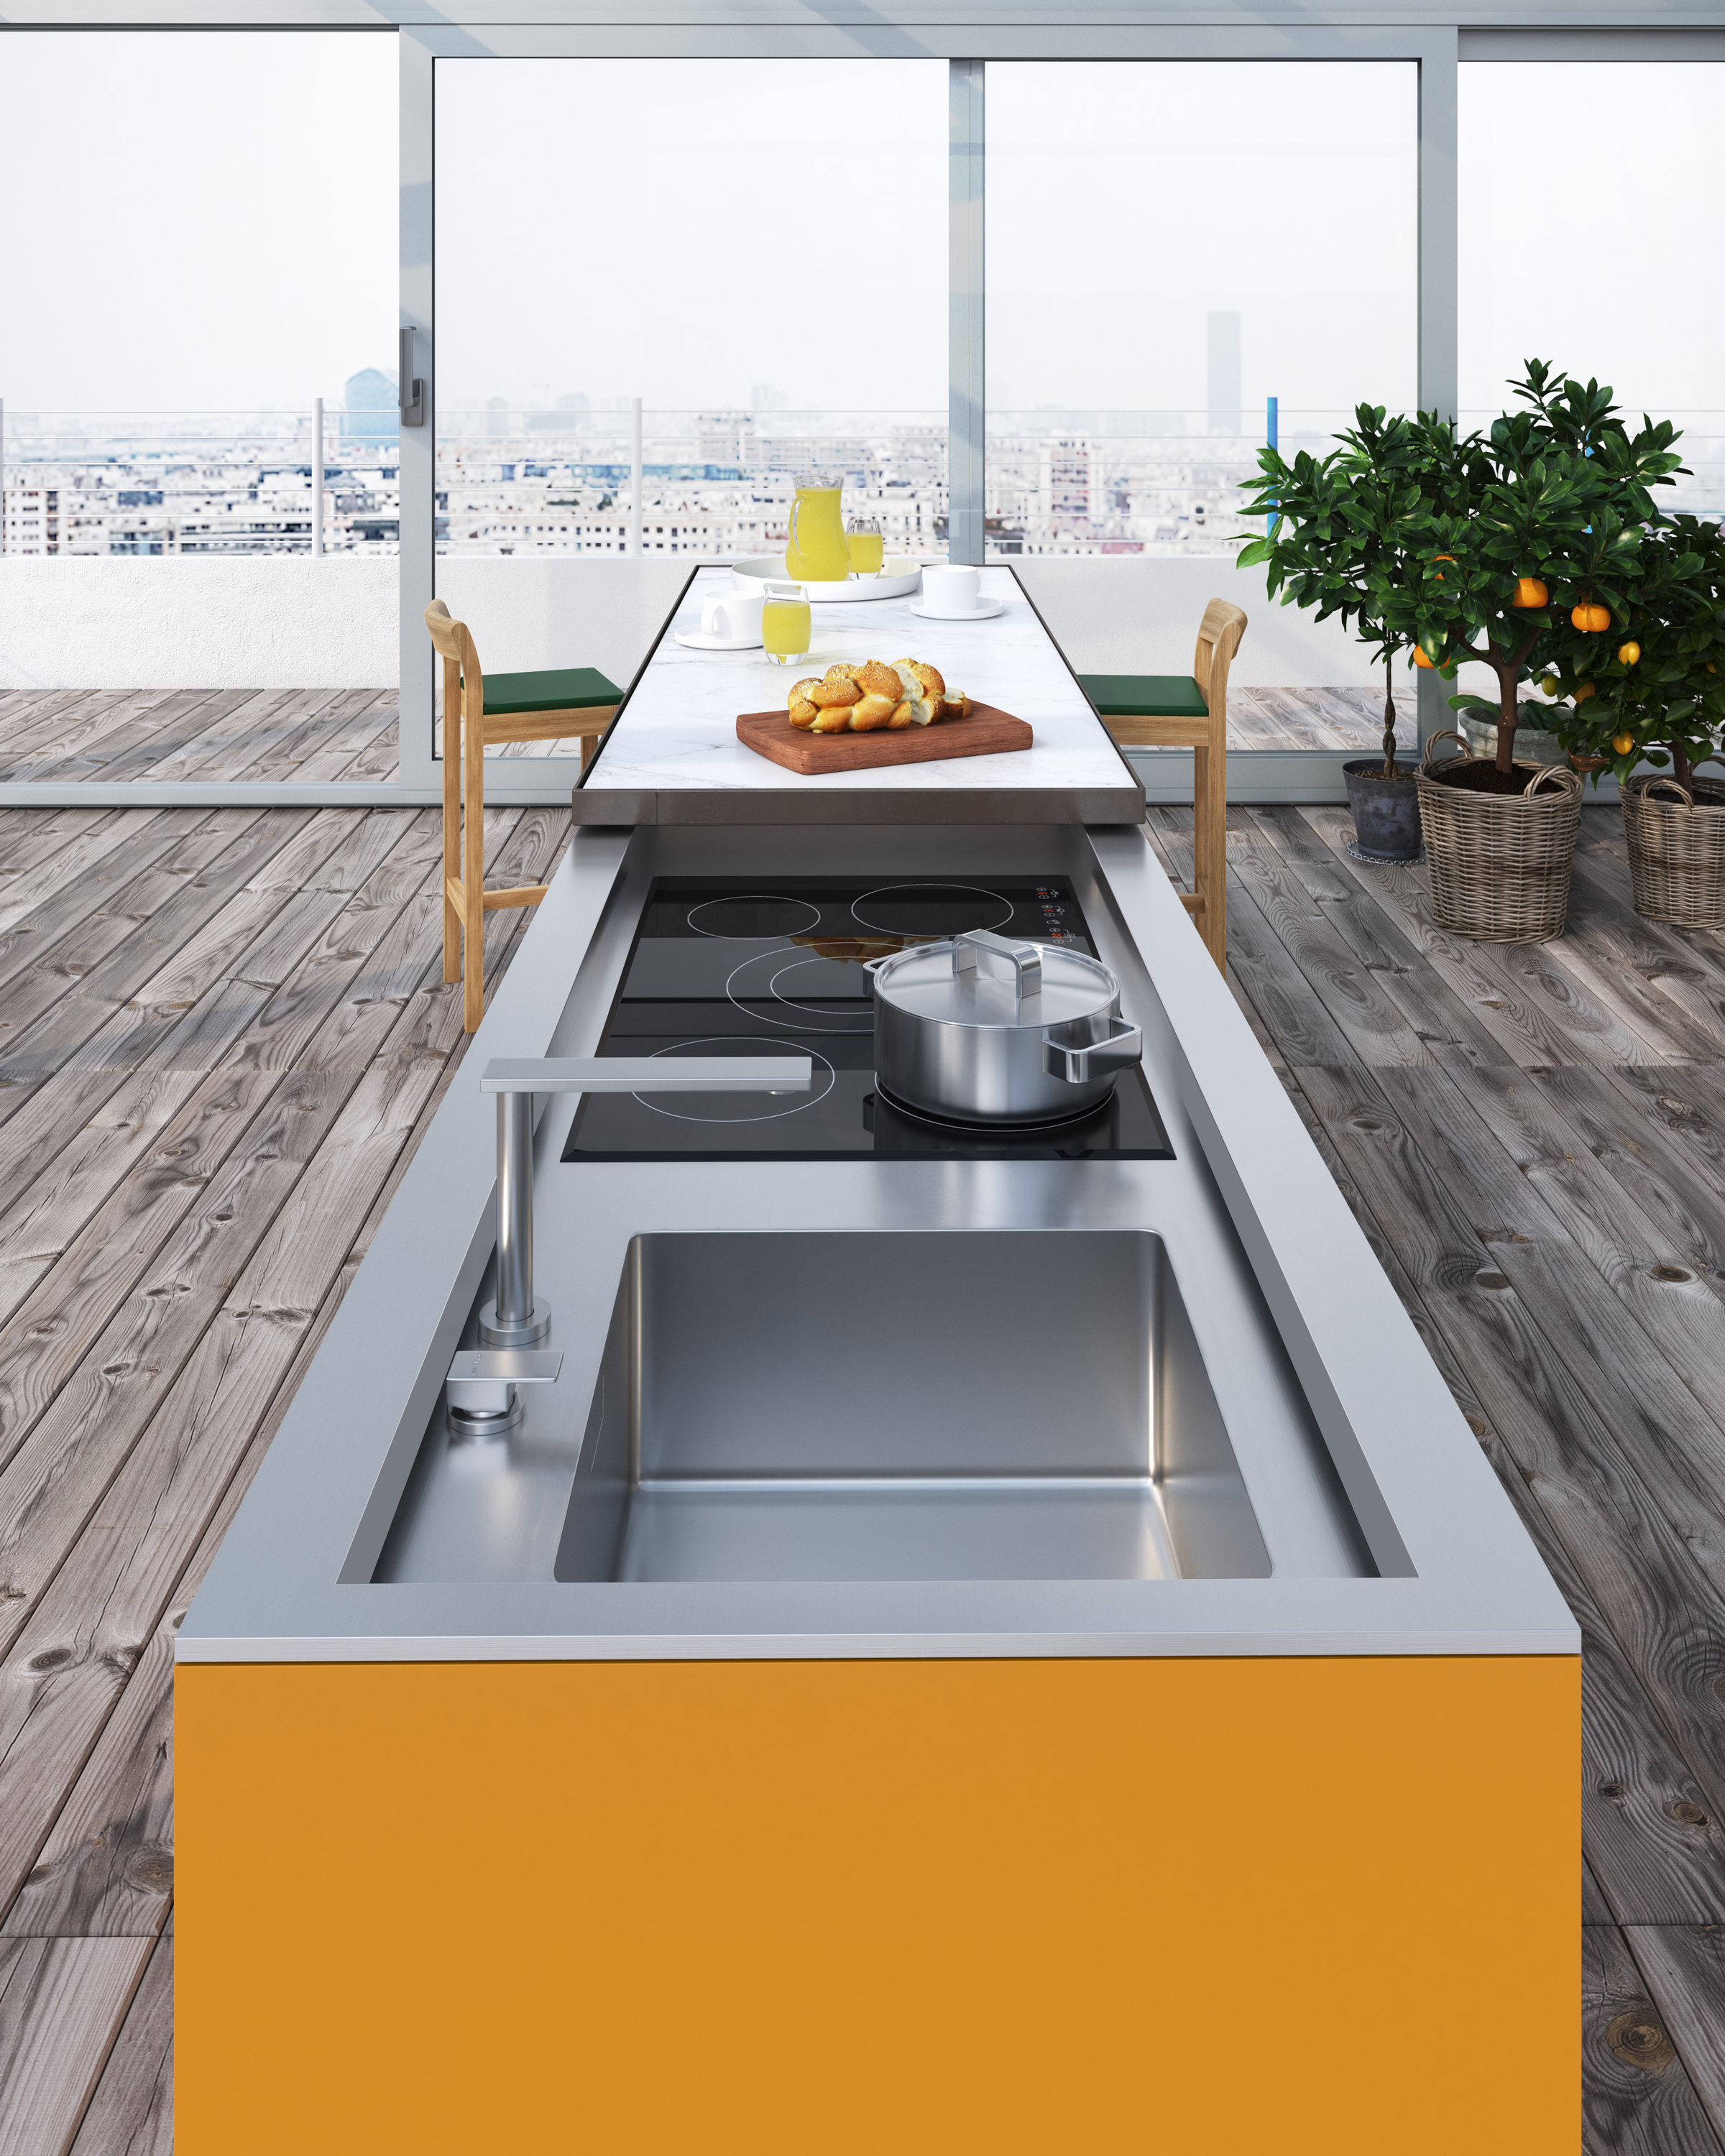 02S_Estel_Coffice_Isole-Compact_Outdoor